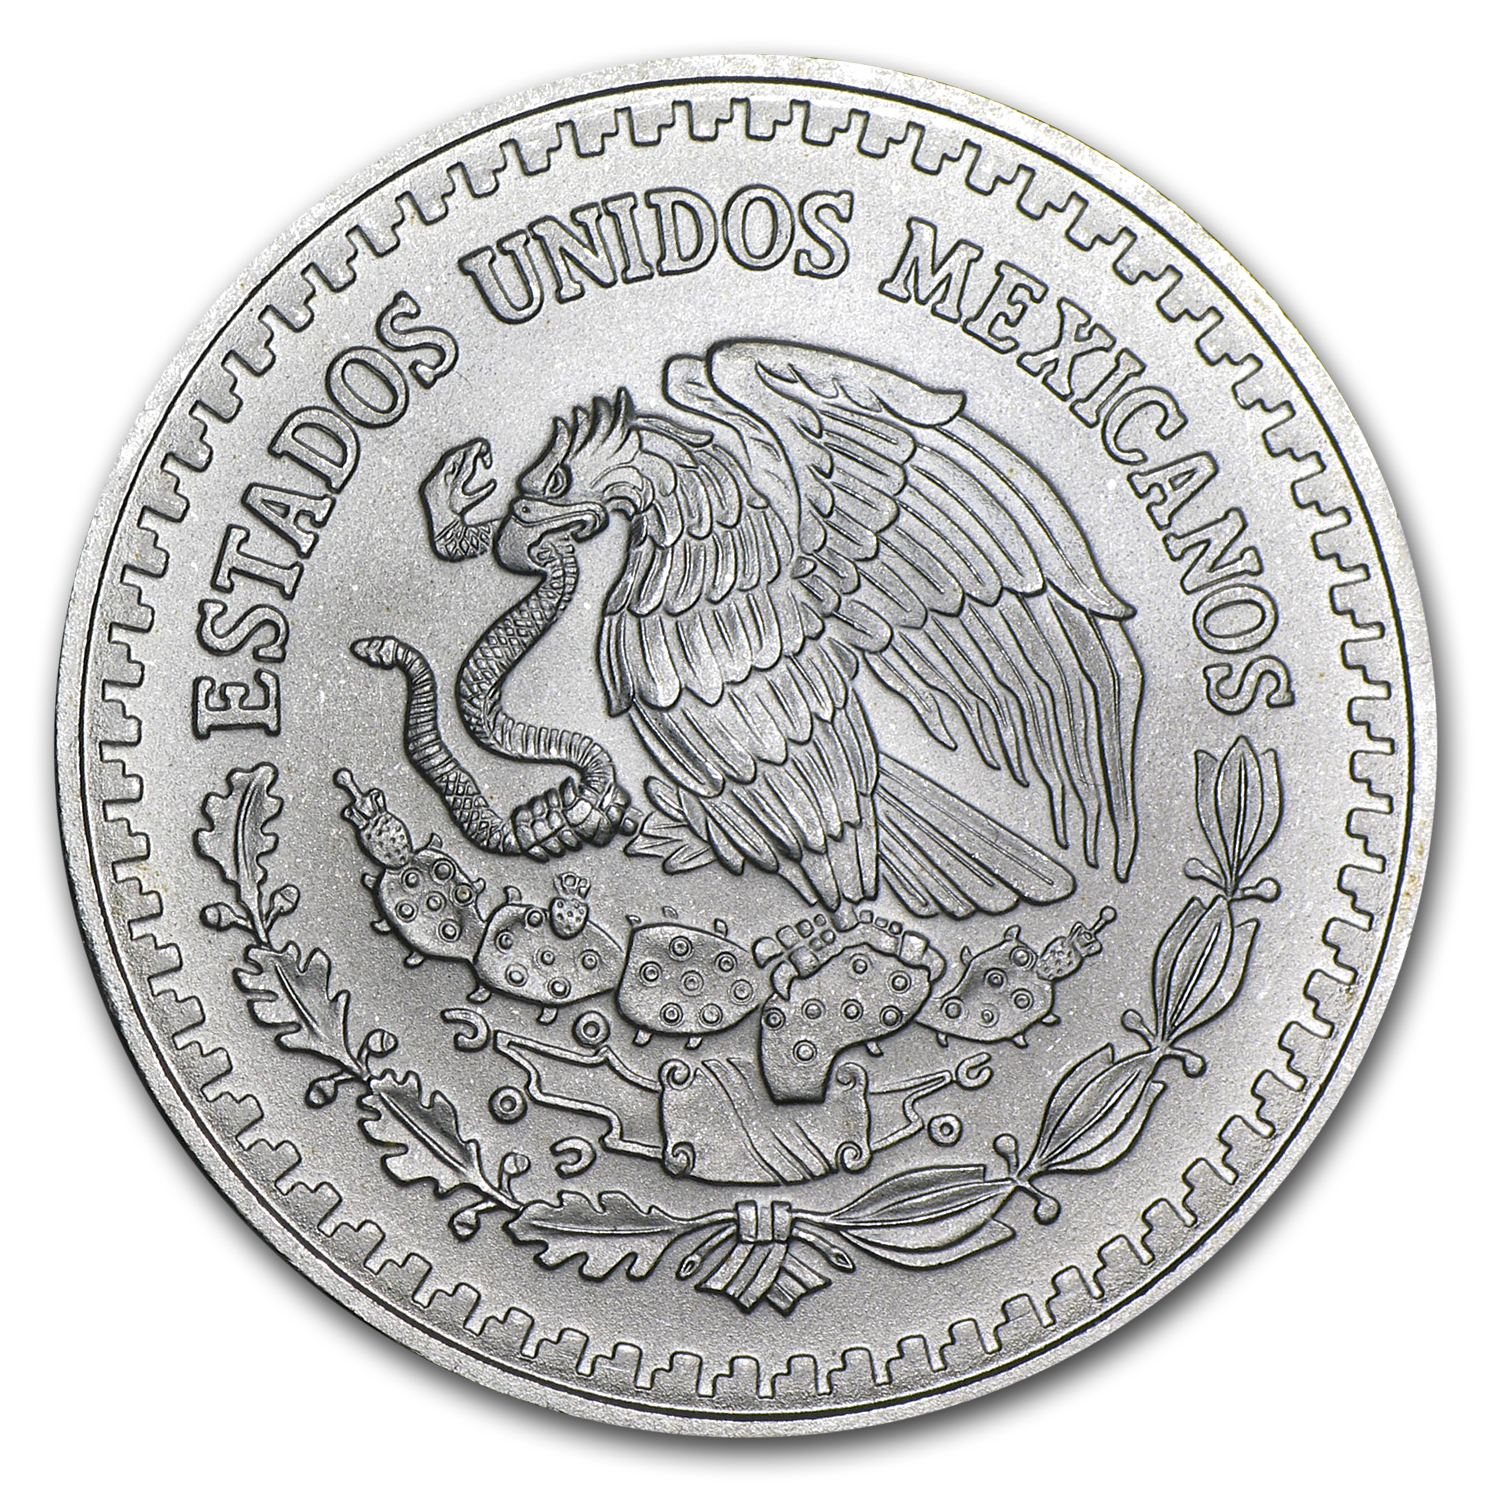 1993 1 oz Silver Mexican Libertad (Brilliant Uncirculated)